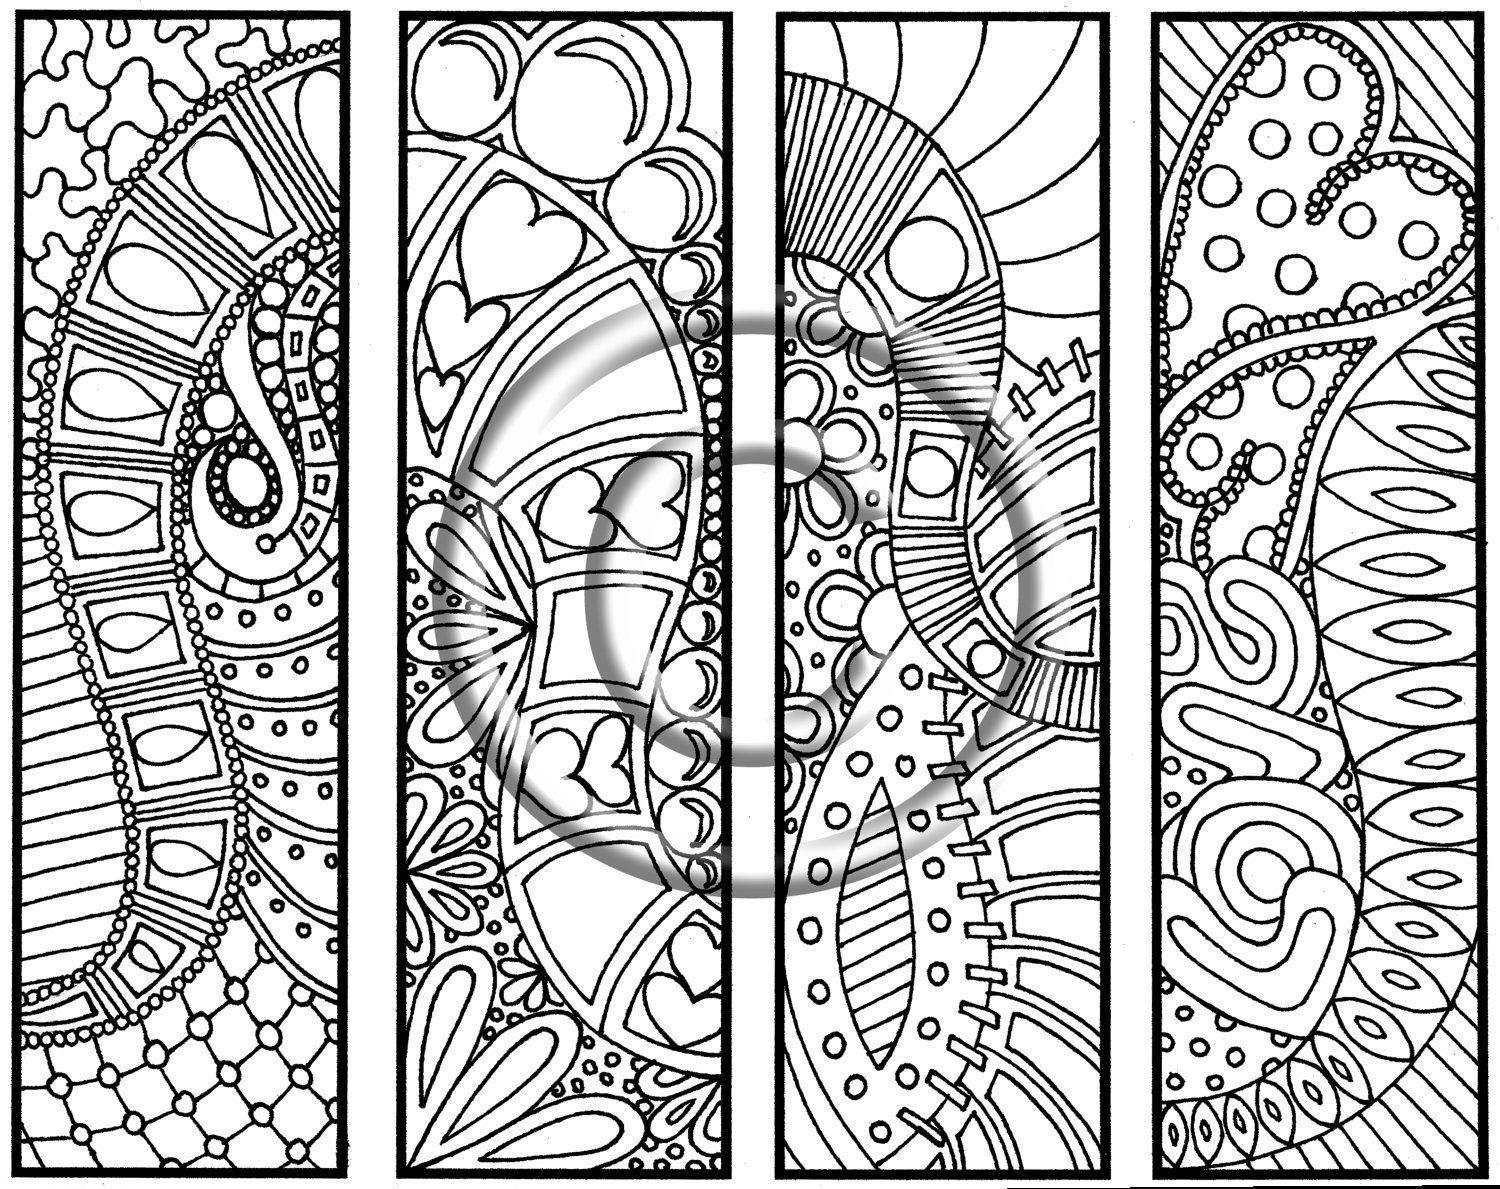 Printable coloring pages with words - Digital Download Coloring Page Hand Drawn Hearts Are Trump Bookmarks Hippie Abstract Zendoodle Bookmark